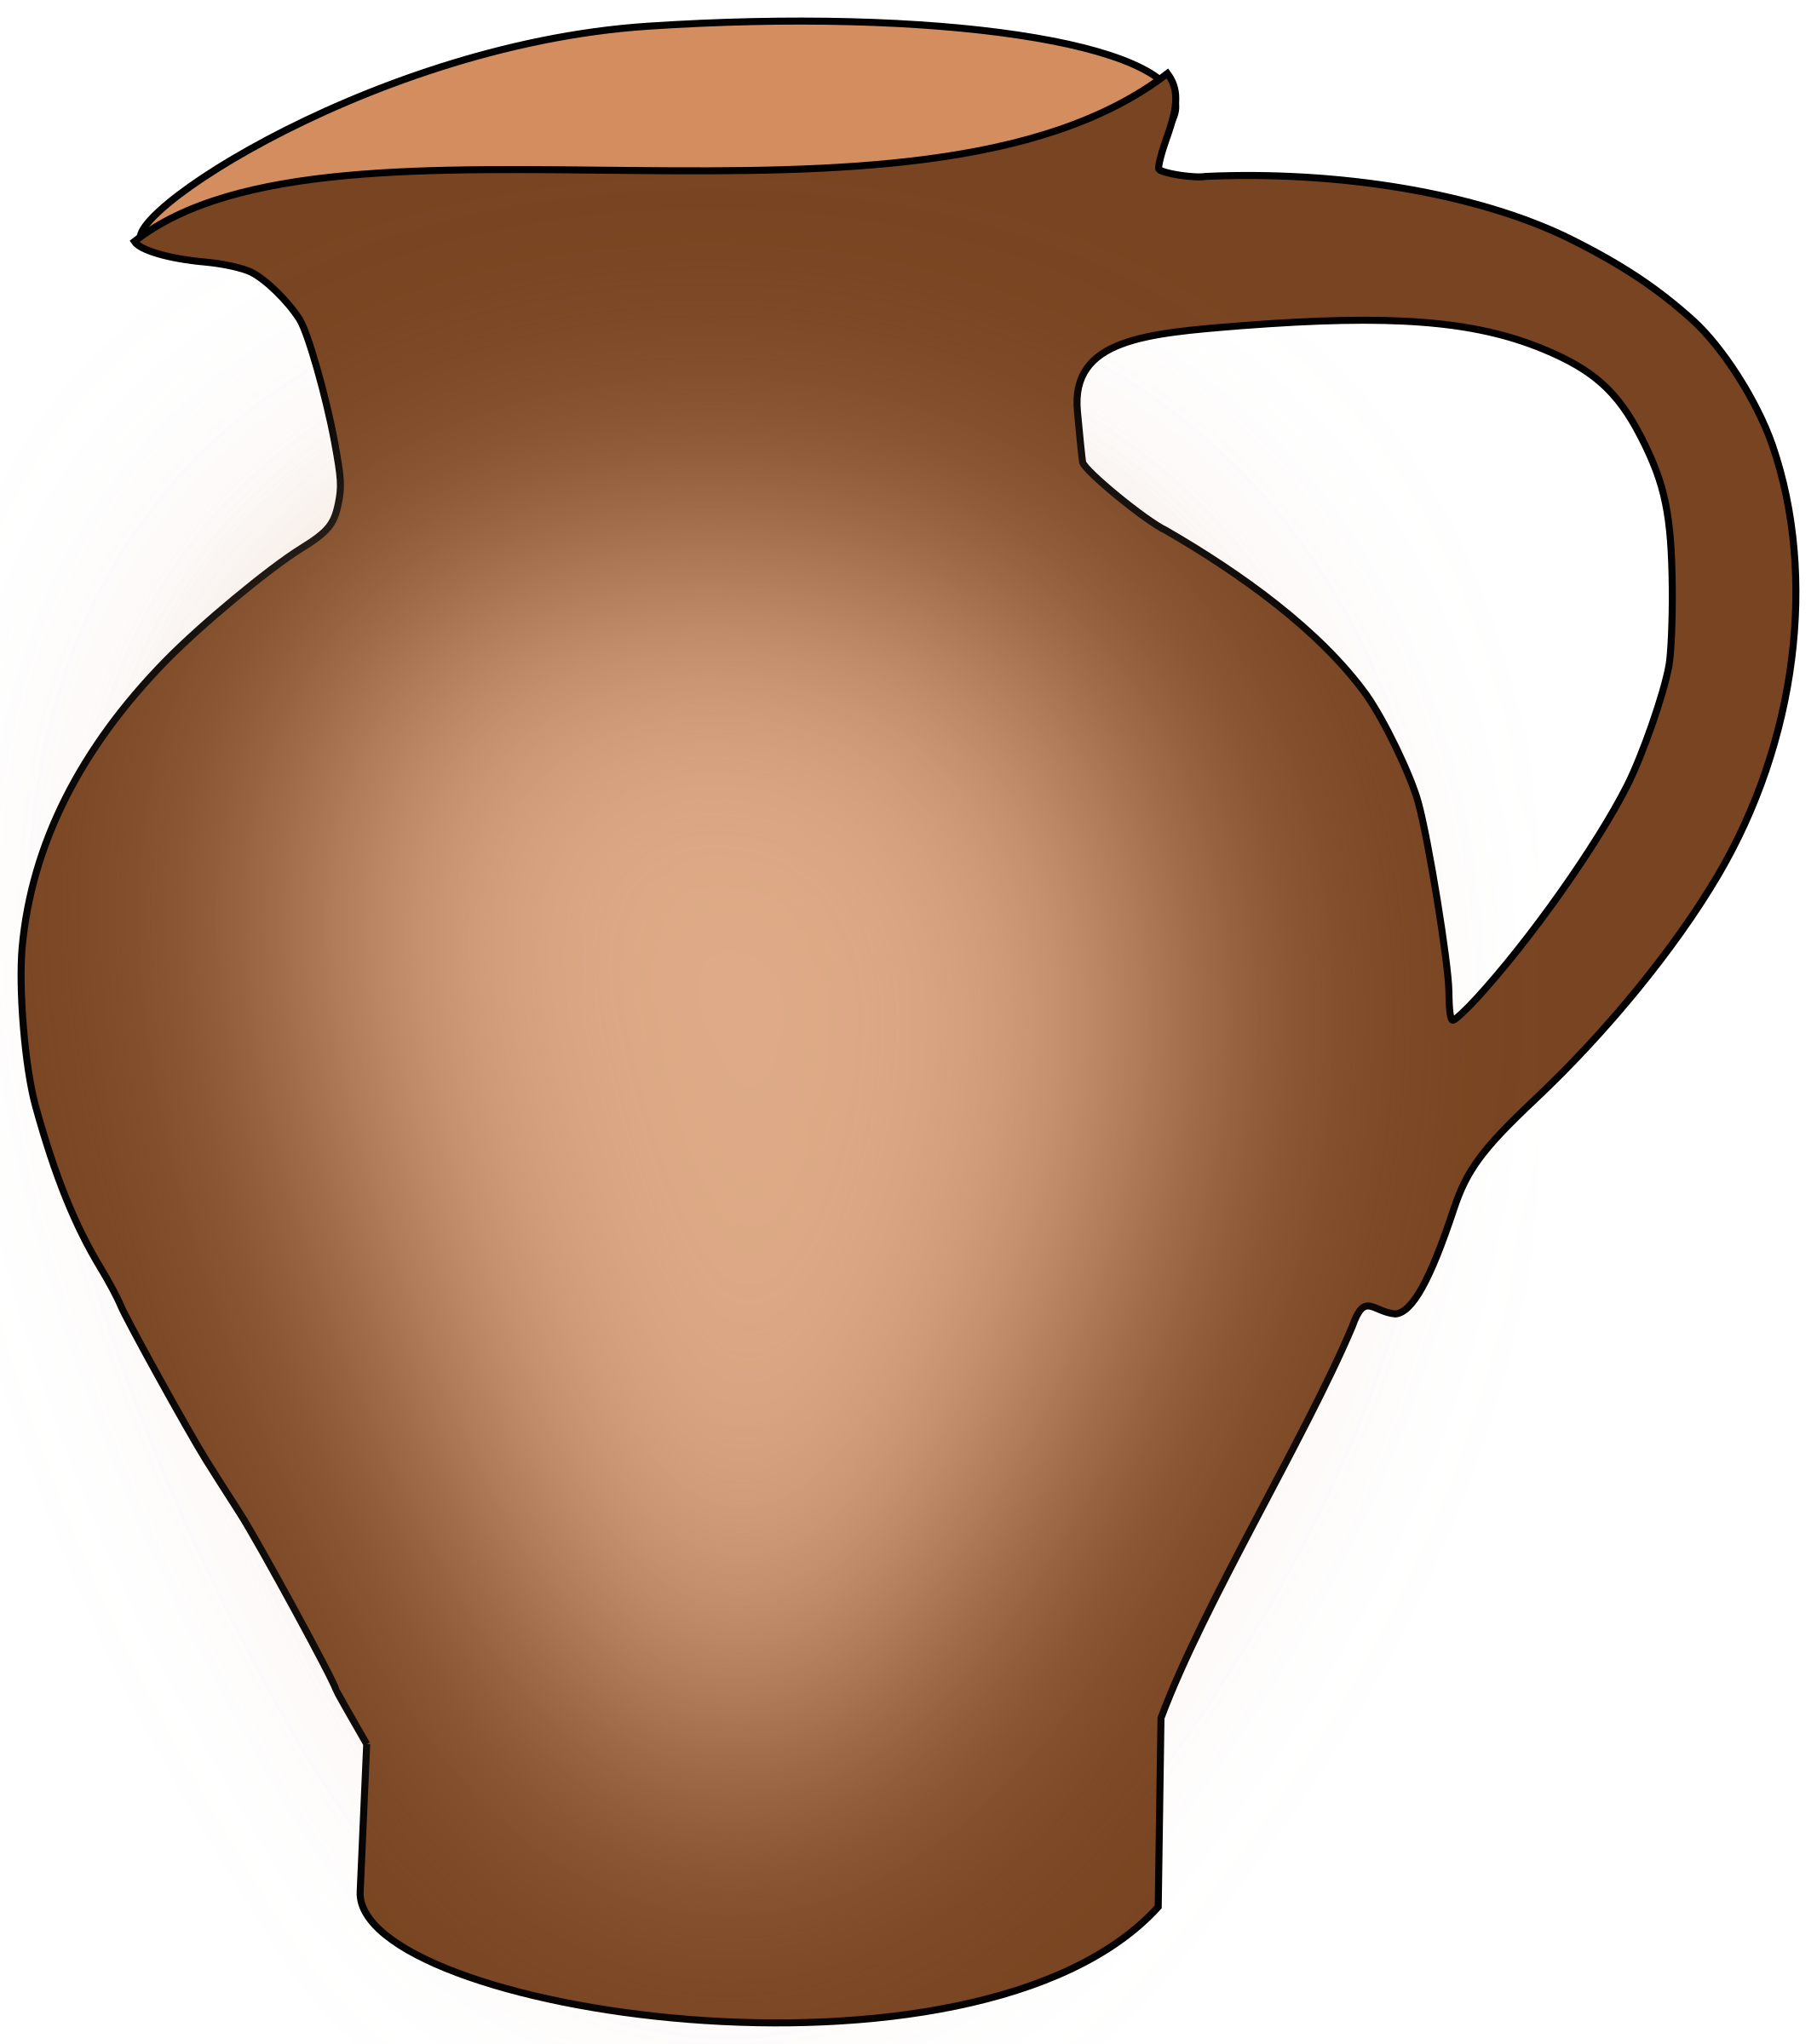 Wine clipart wine jug. Pottery at getdrawings com